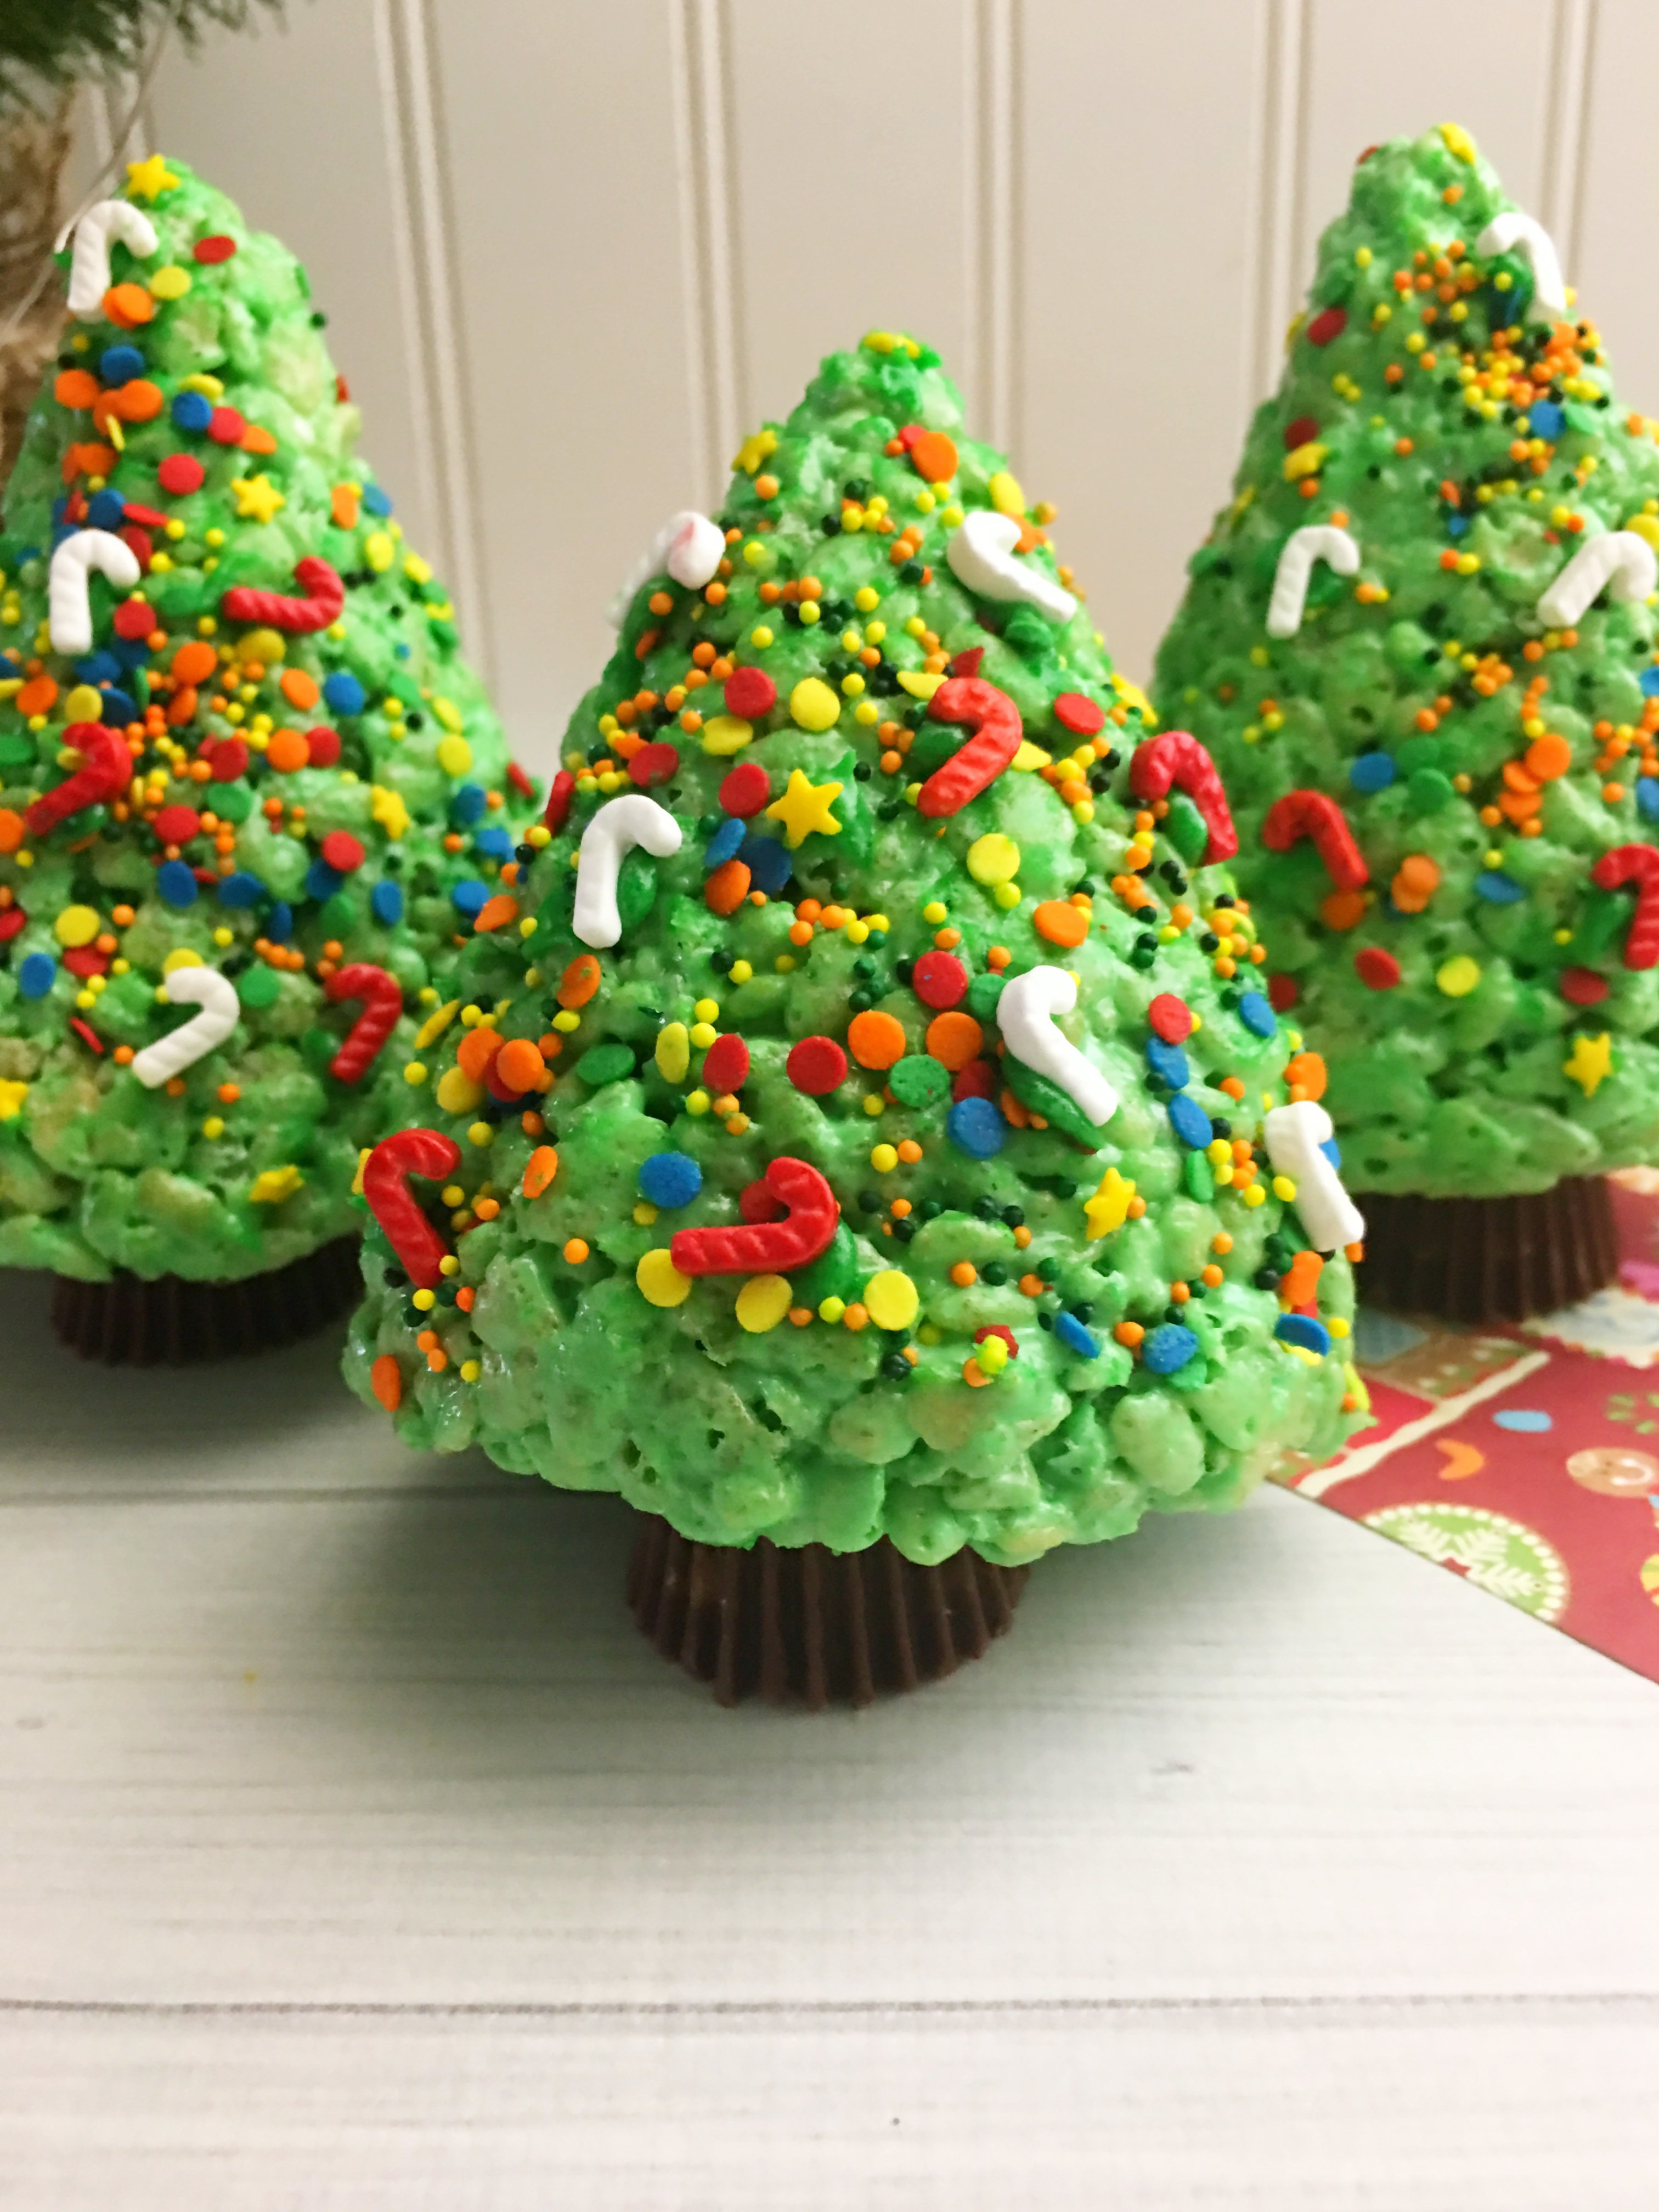 Christmas Tree Rice Krispies!